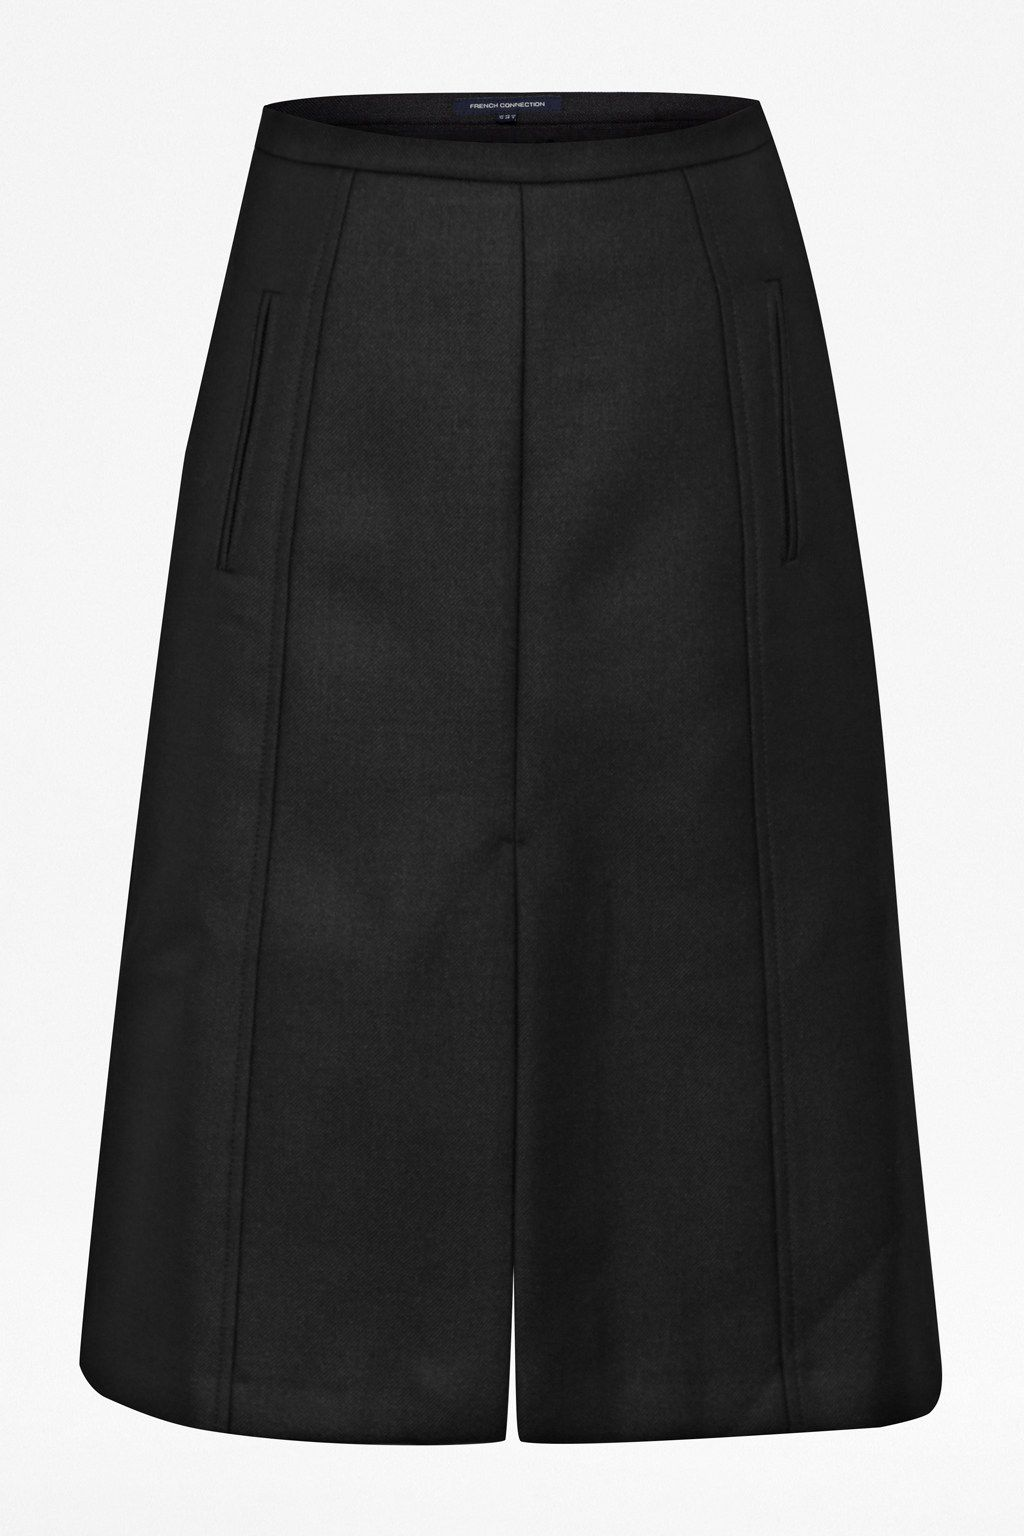 Fast battersea wool knee length skirt